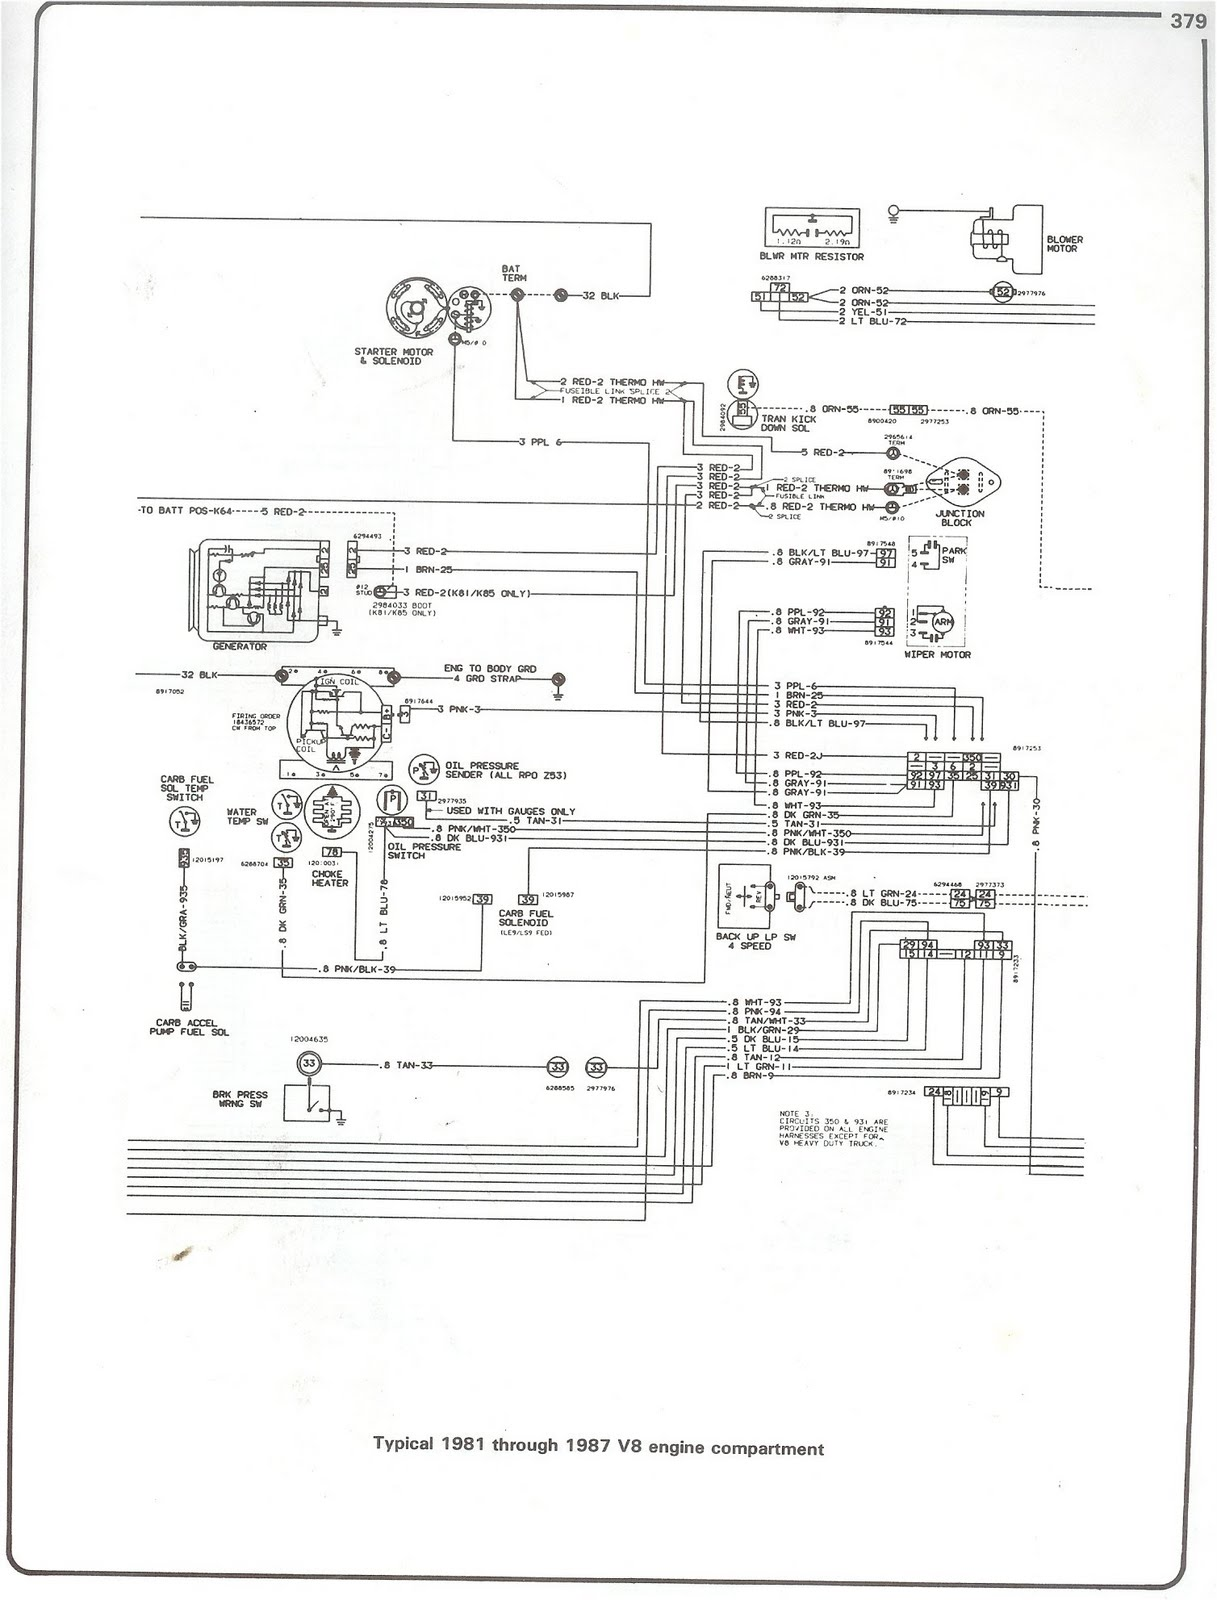 81 87_chevy_truck_V8_engine repair manuals toyota pickup 1981 wiring diagrams readingrat net 1982 chevy truck engine wiring diagram at creativeand.co